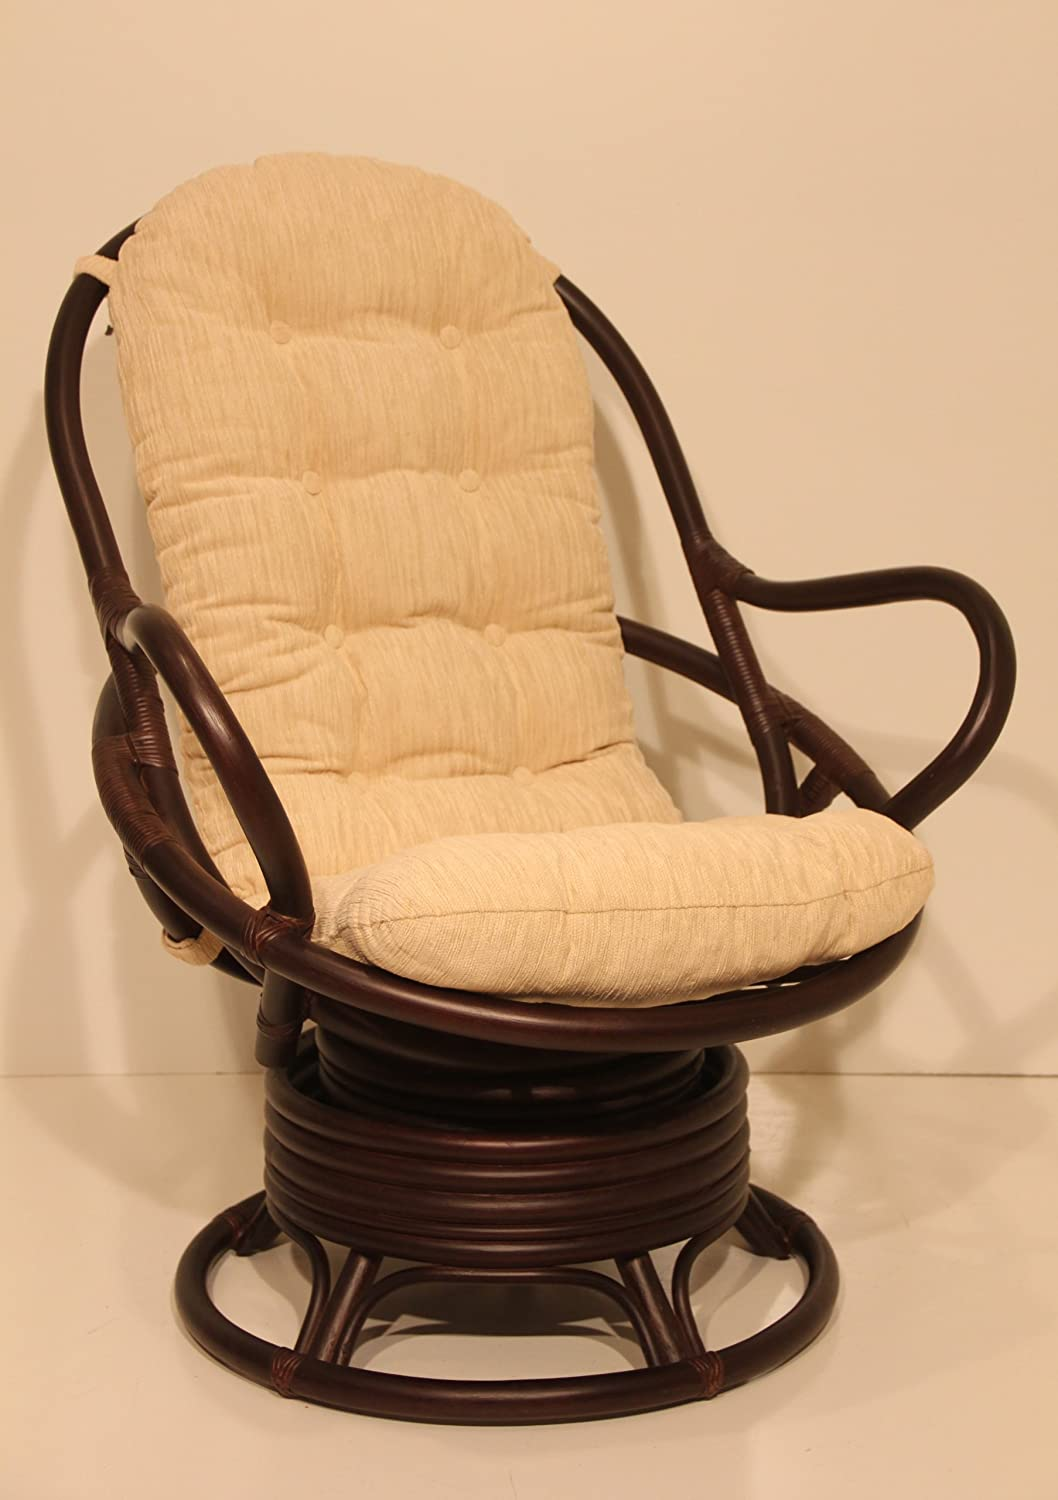 Captivating Amazon.com: Java Swivel Rocking Chair Dark Brown With Cushion Handmade  Natural Wicker Rattan Furniture: Kitchen U0026 Dining